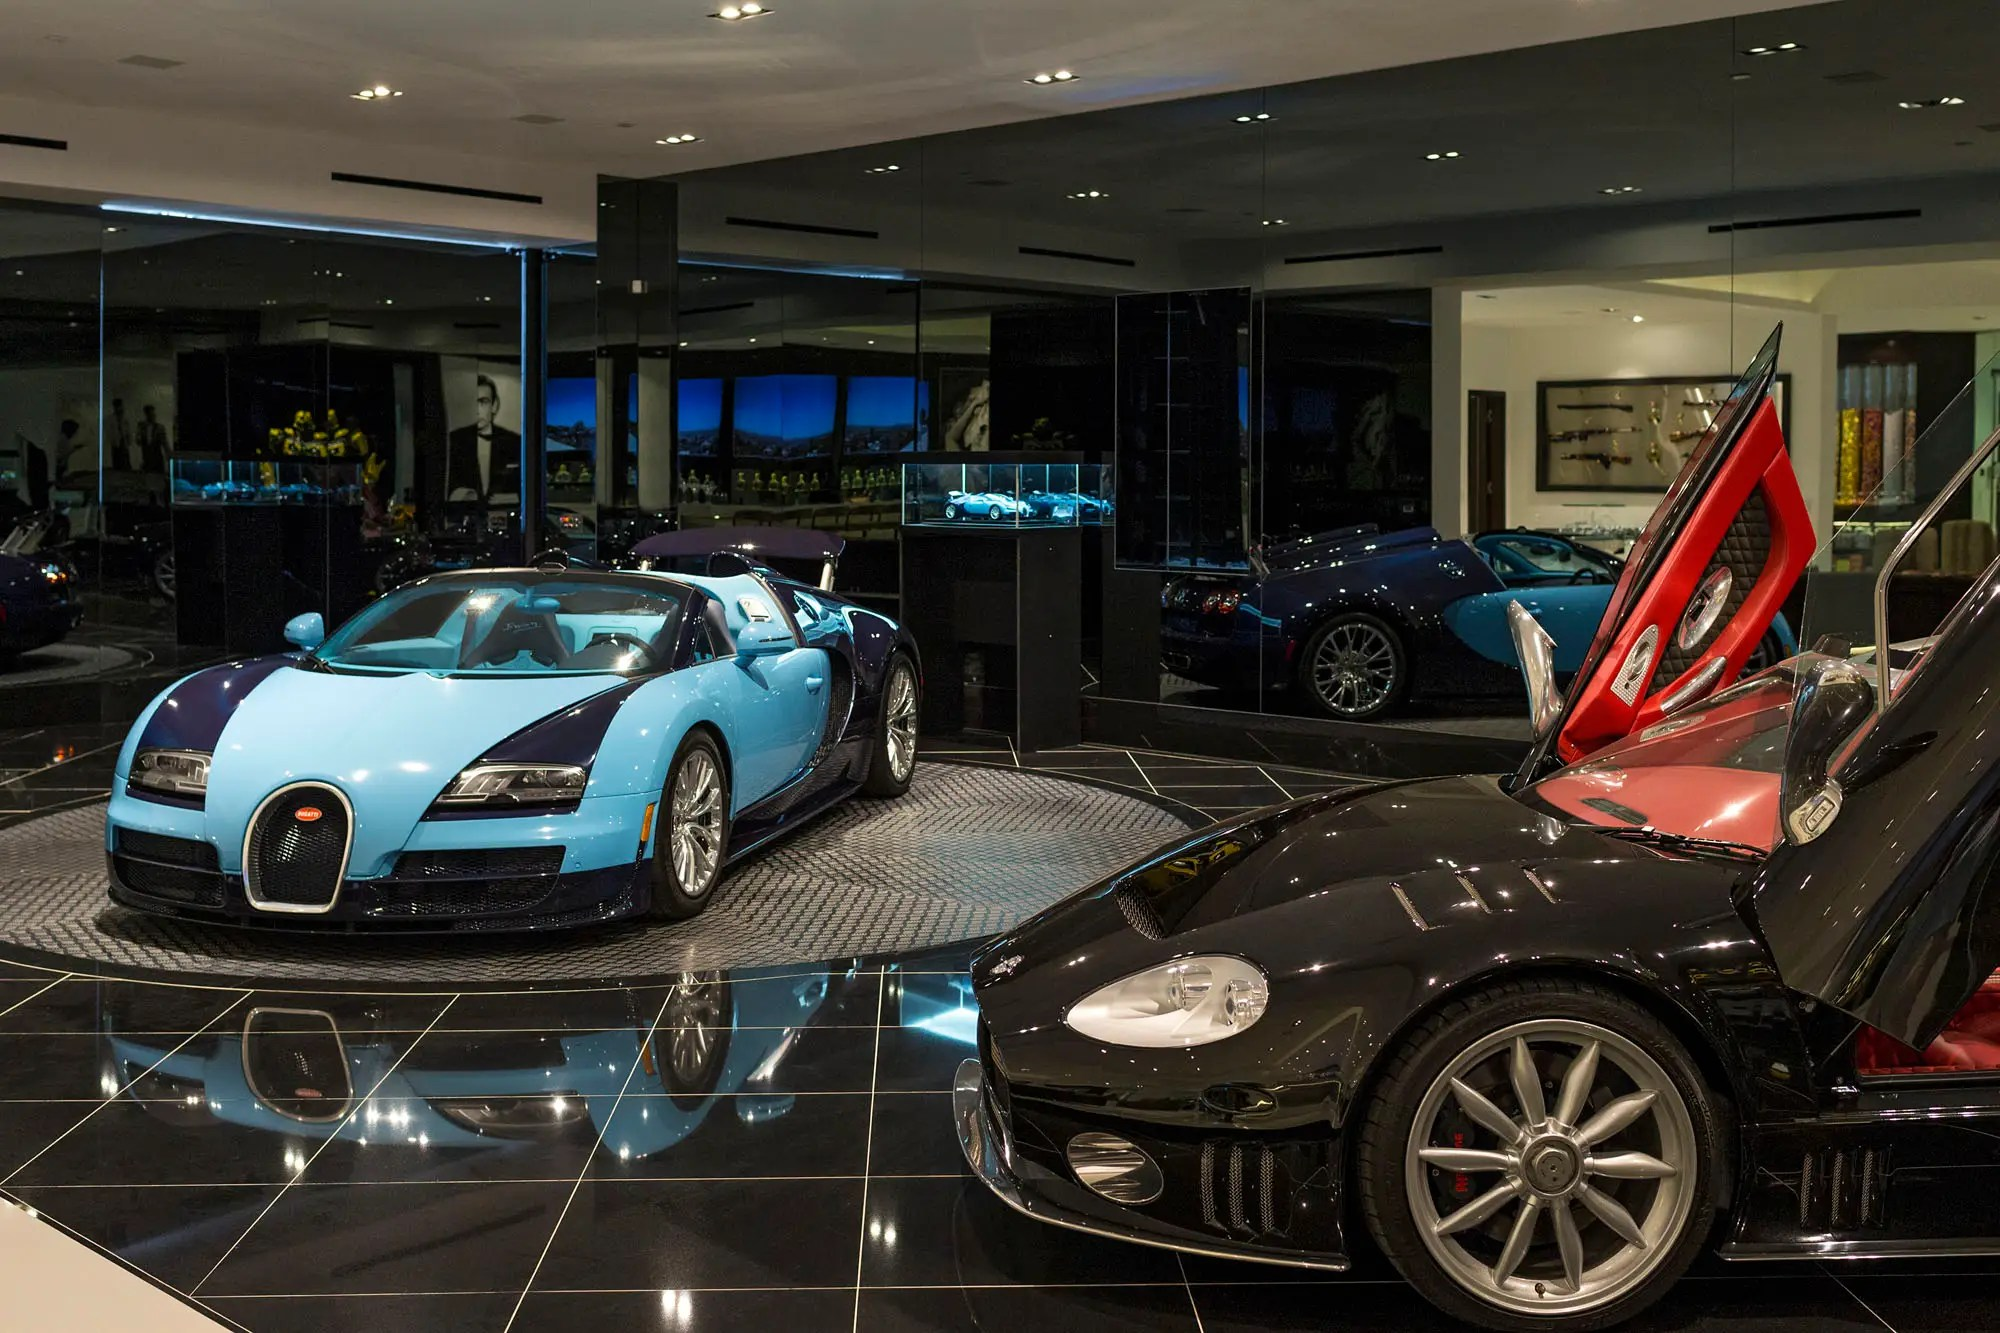 And for those who want to showcase their cars, there's a space for that, too.